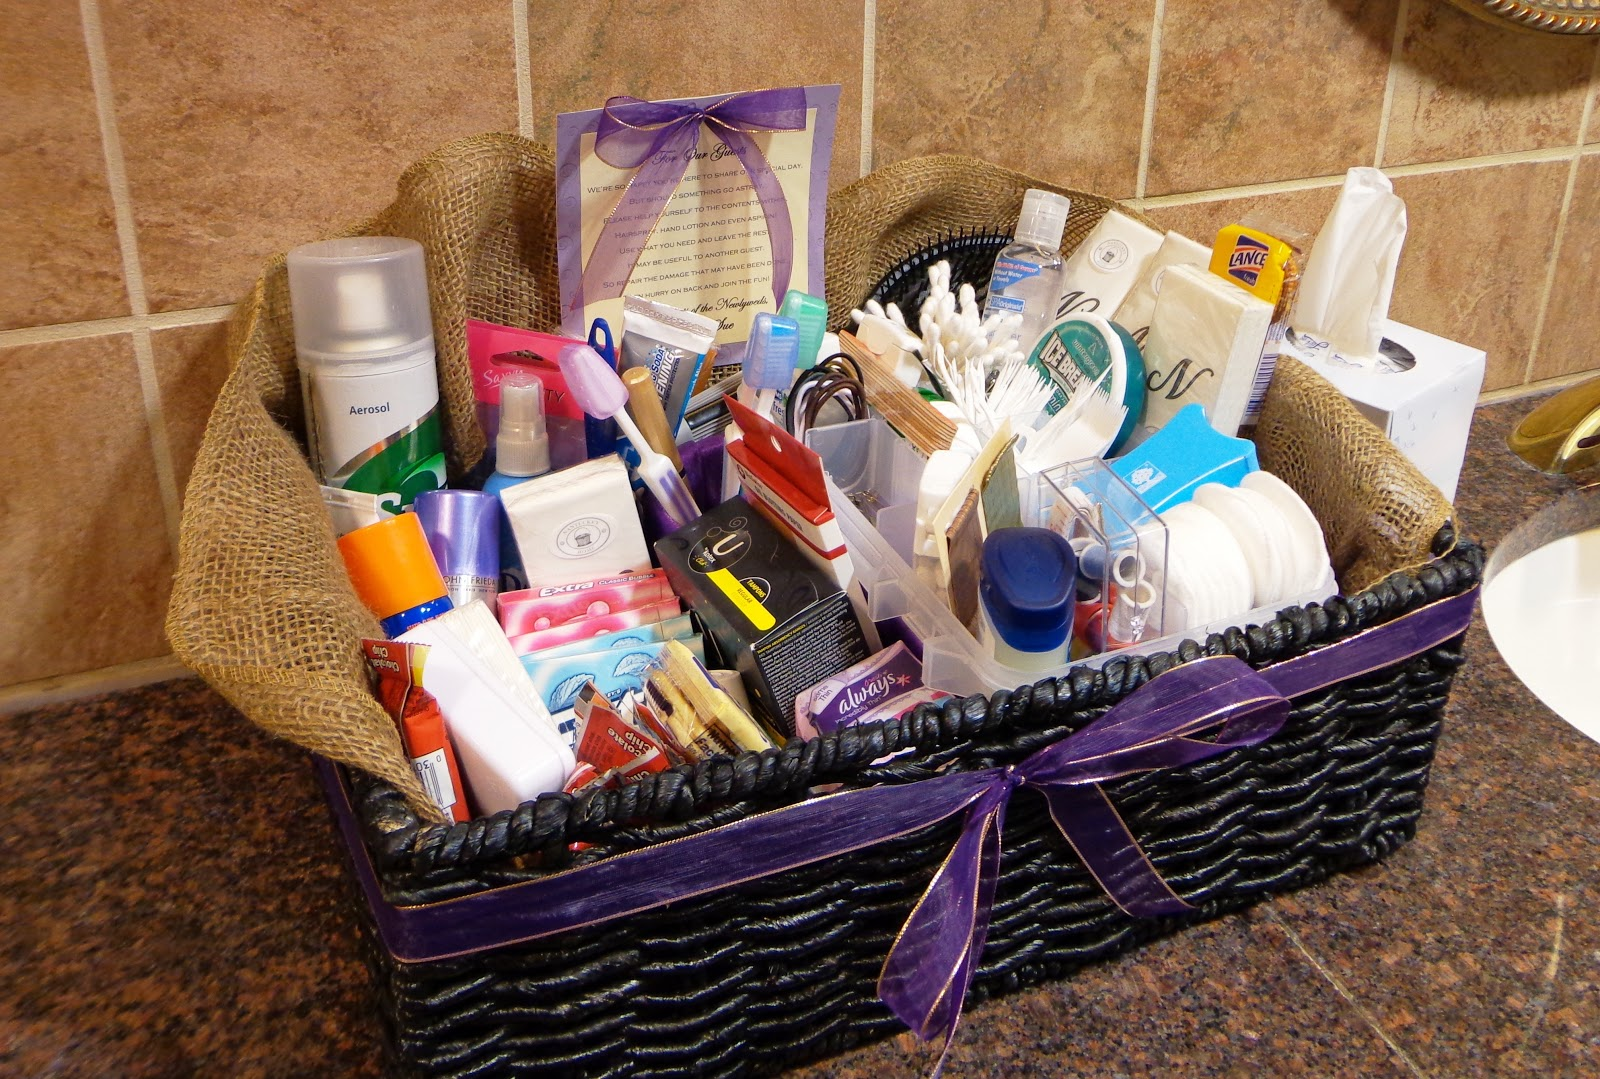 my honey bunch wedding bathroom basket ForBathroom Basket Ideas For Wedding